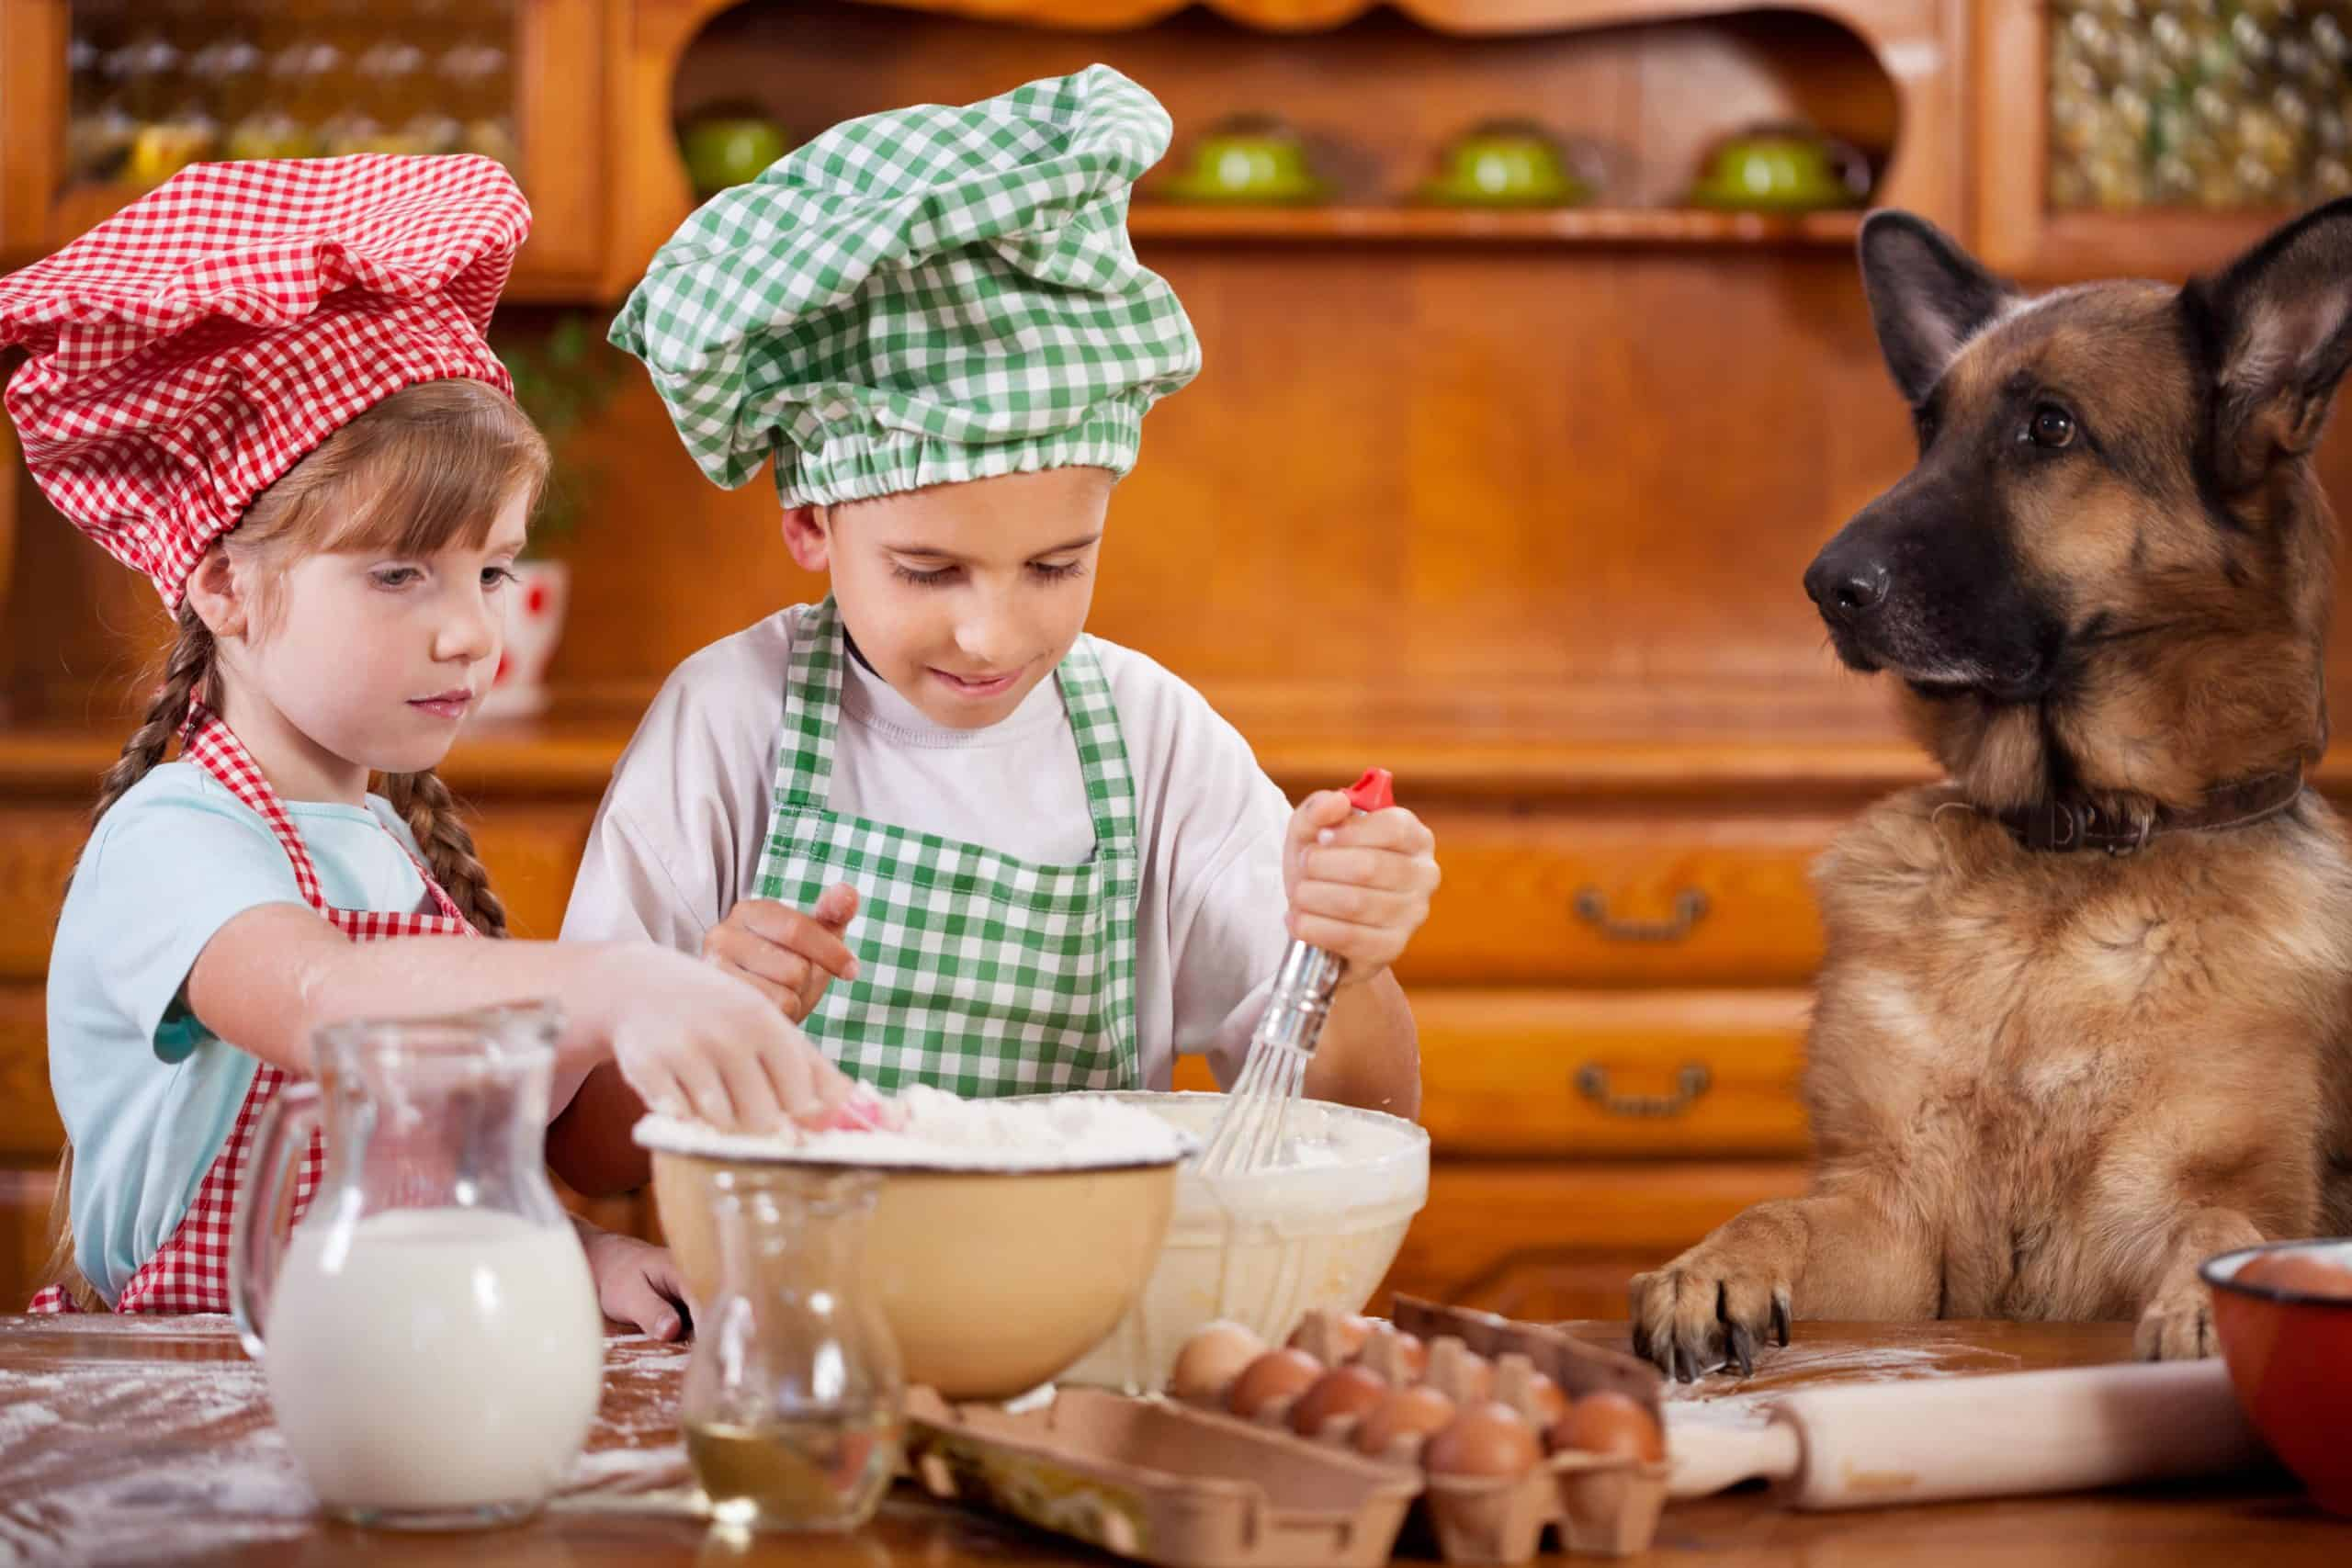 Children bake in kitchen while German Shepherd watches. The yeast in unbaked dough can be life-threatening for dogs.